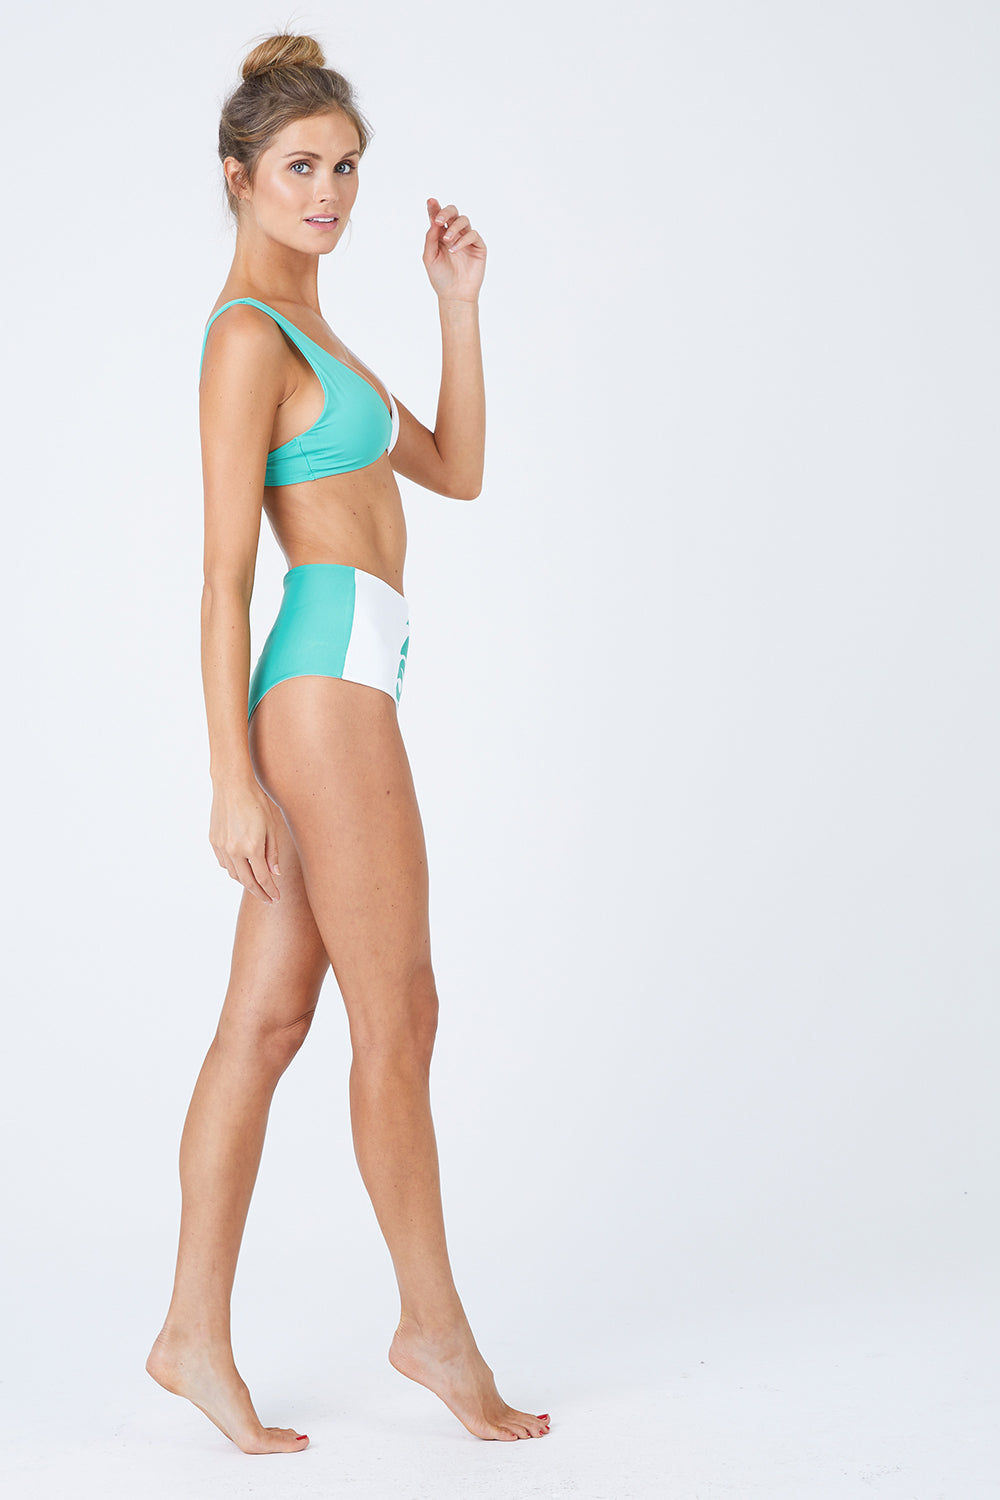 L SPACE Ozzie Color Block Bikini Top - Spearmint/White Bikini Top |  Spearmint/White| L Space Ozzie Color Block Bikini Top - Spearmint/White. Color block design Removable pads S-hook bra closure with 3 loops for adjustability Size XS-L 80% nylon, 20% spandex Made in the USA Like all delicates, shape, color and fit are best preserved if hand washed in cold water. Lay flat to dry. Front View